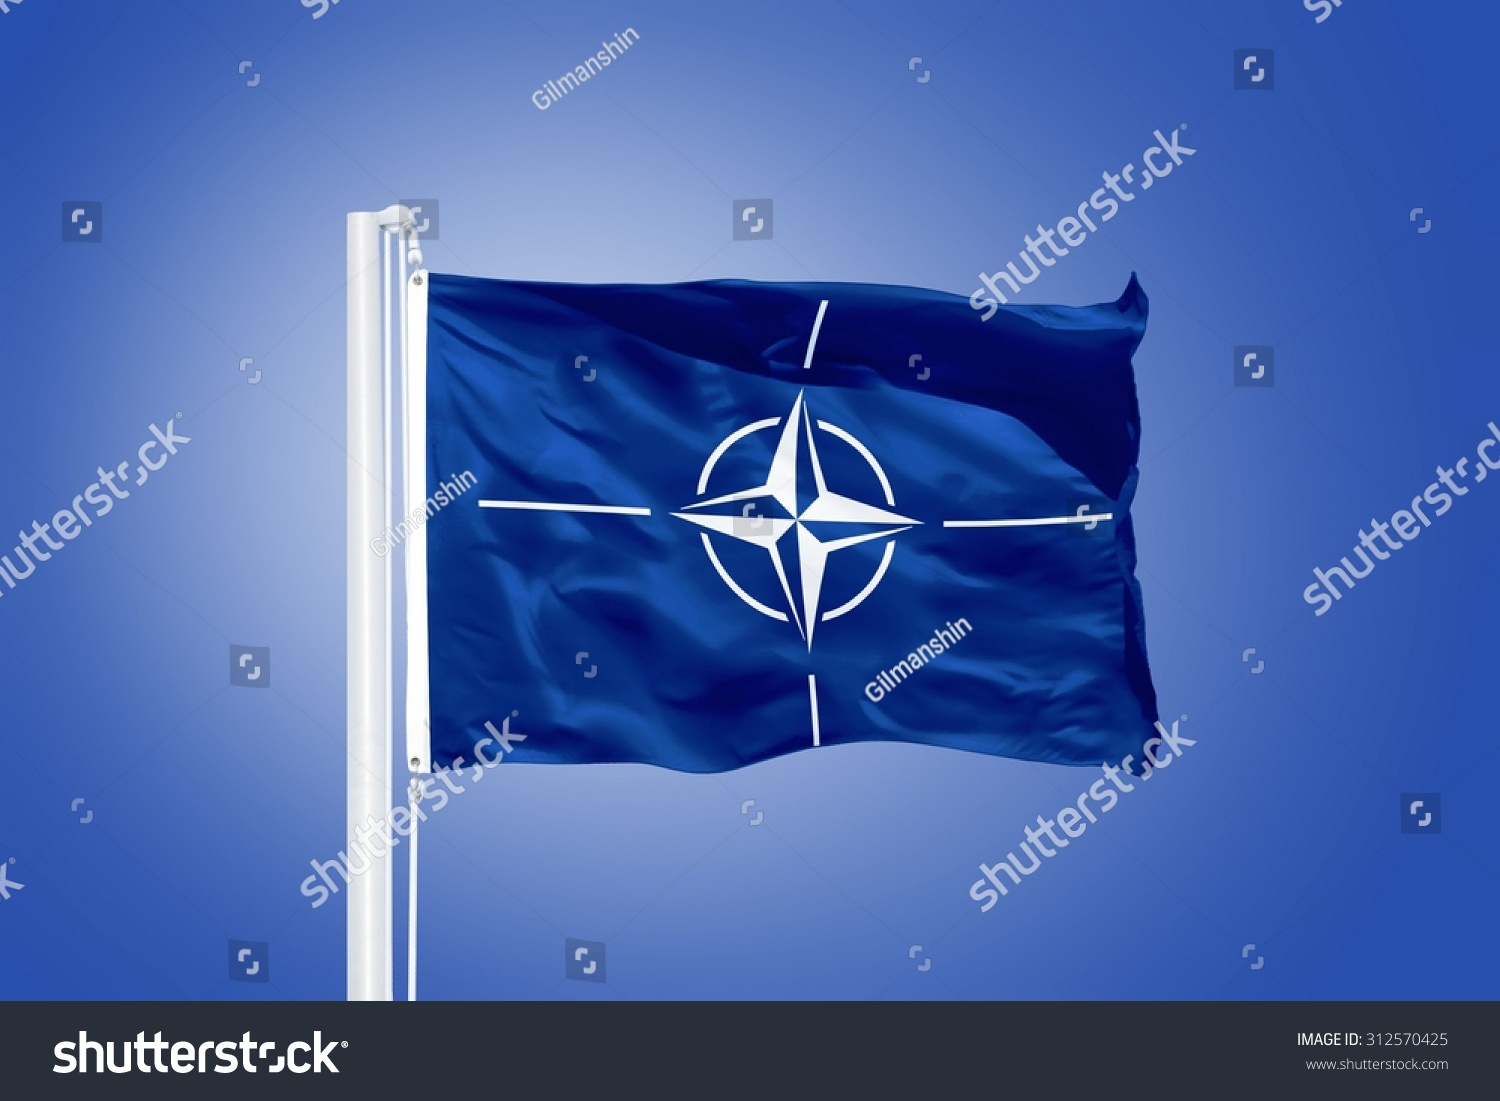 an analysis of the north atlantic treaty organization nato Offers a prospective analysis of the north atlantic treaty organization and the anticipated security consequences of climate change.